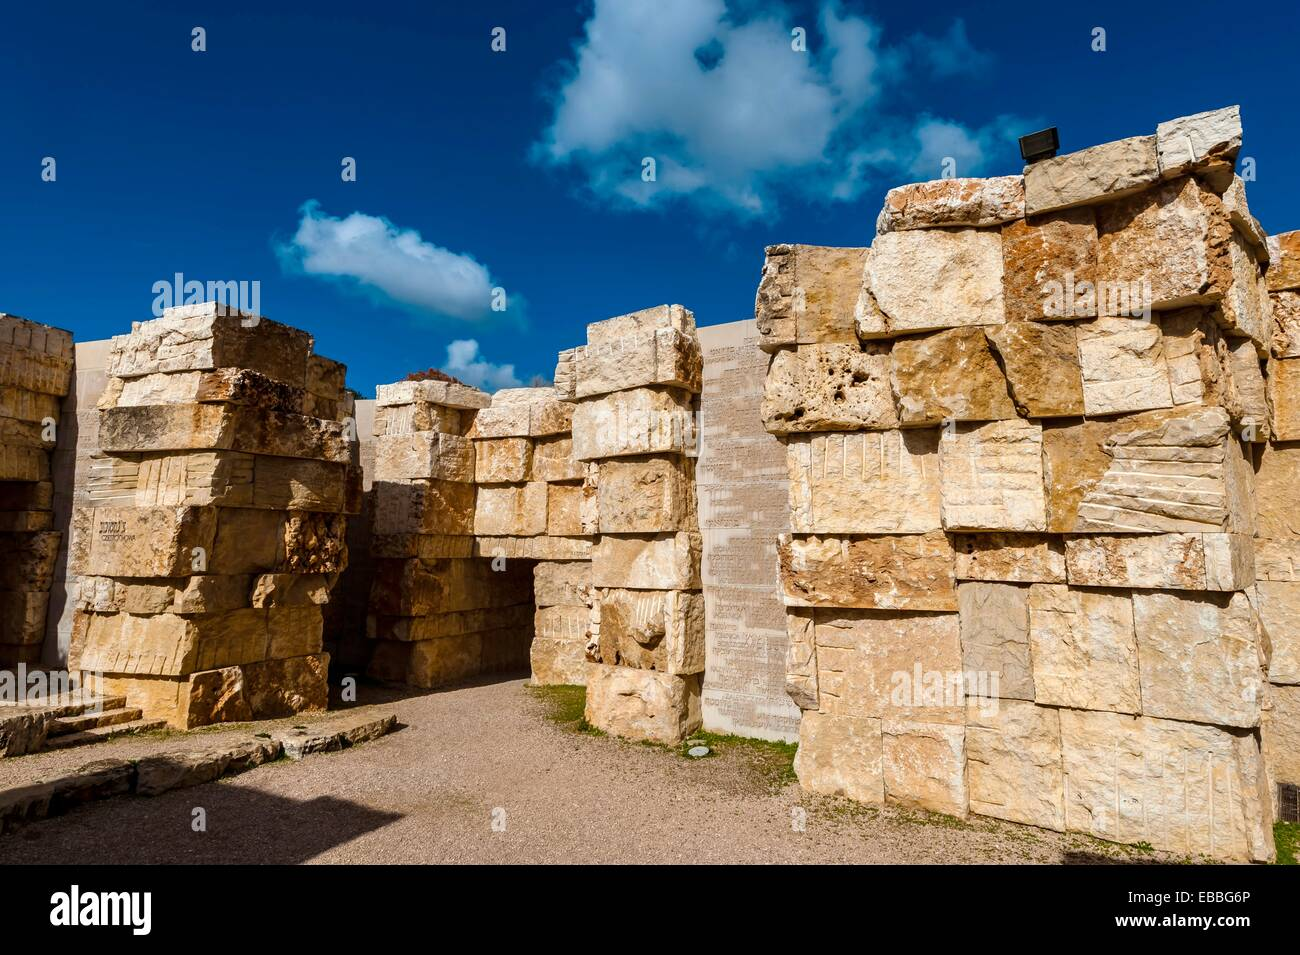 The Valley of Communities, Yad Vashem, the Holocaust Martyrs´ and Heroes´ Remembrance Authority, Jerusalem, - Stock Image